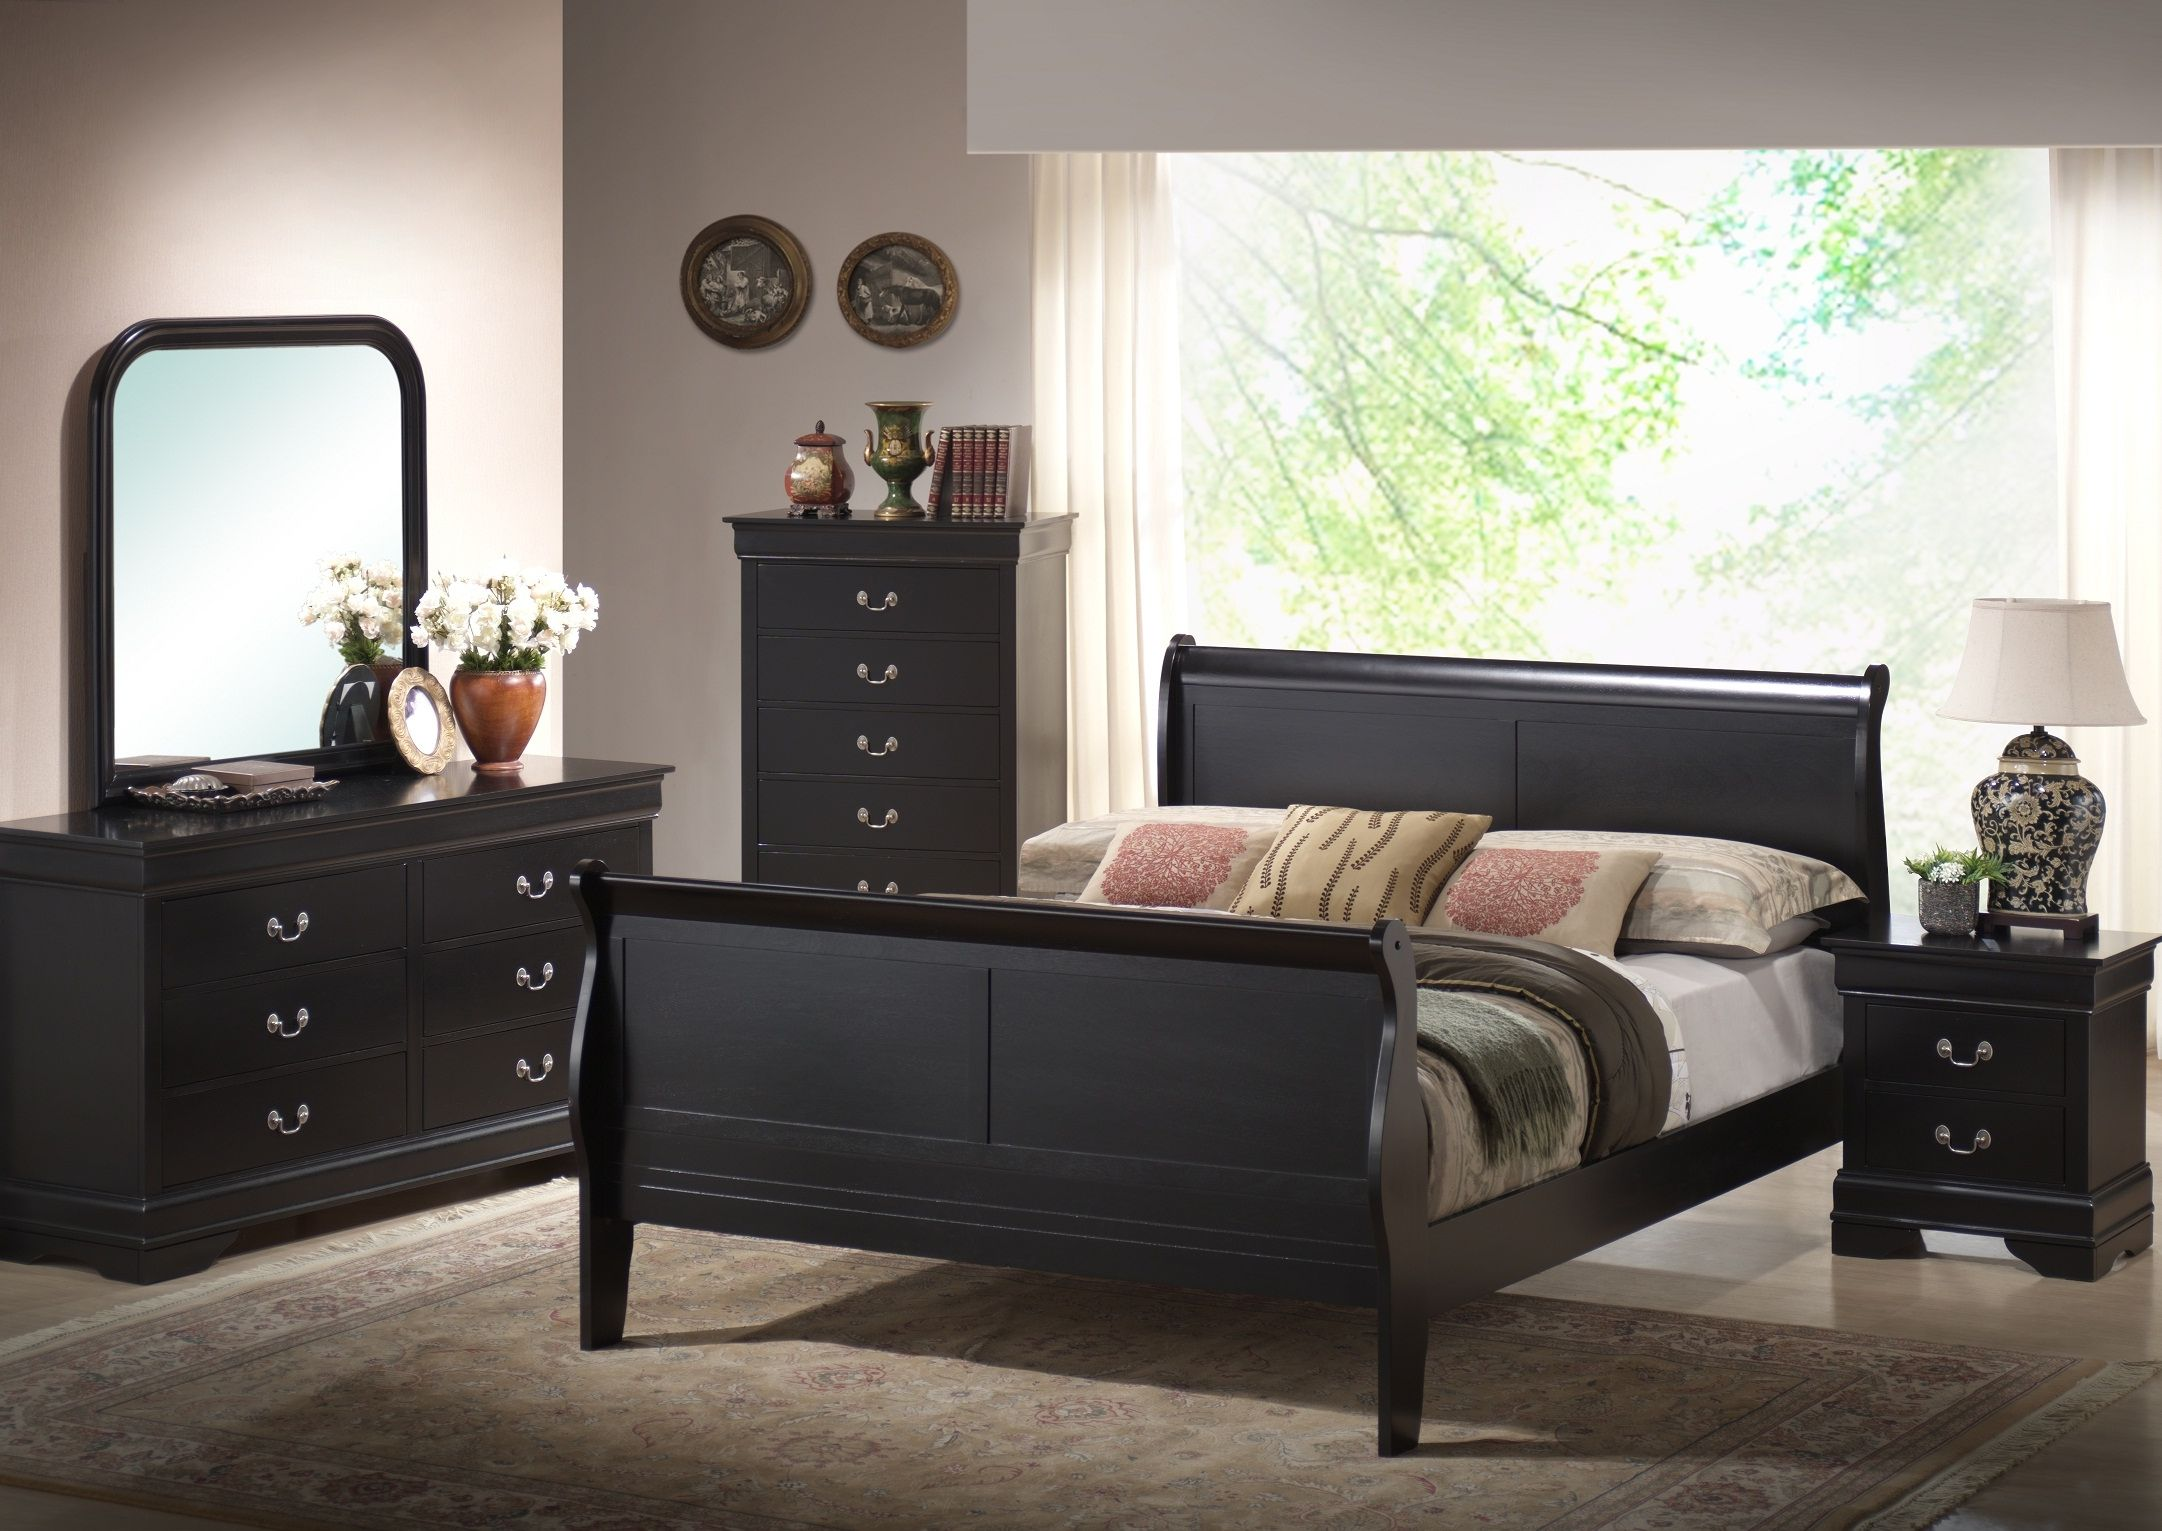 Refine your bedroom with the classic styling of the Sleigh bedroom  collection  This assortment offers. Refine your bedroom with the classic styling of the Sleigh bedroom